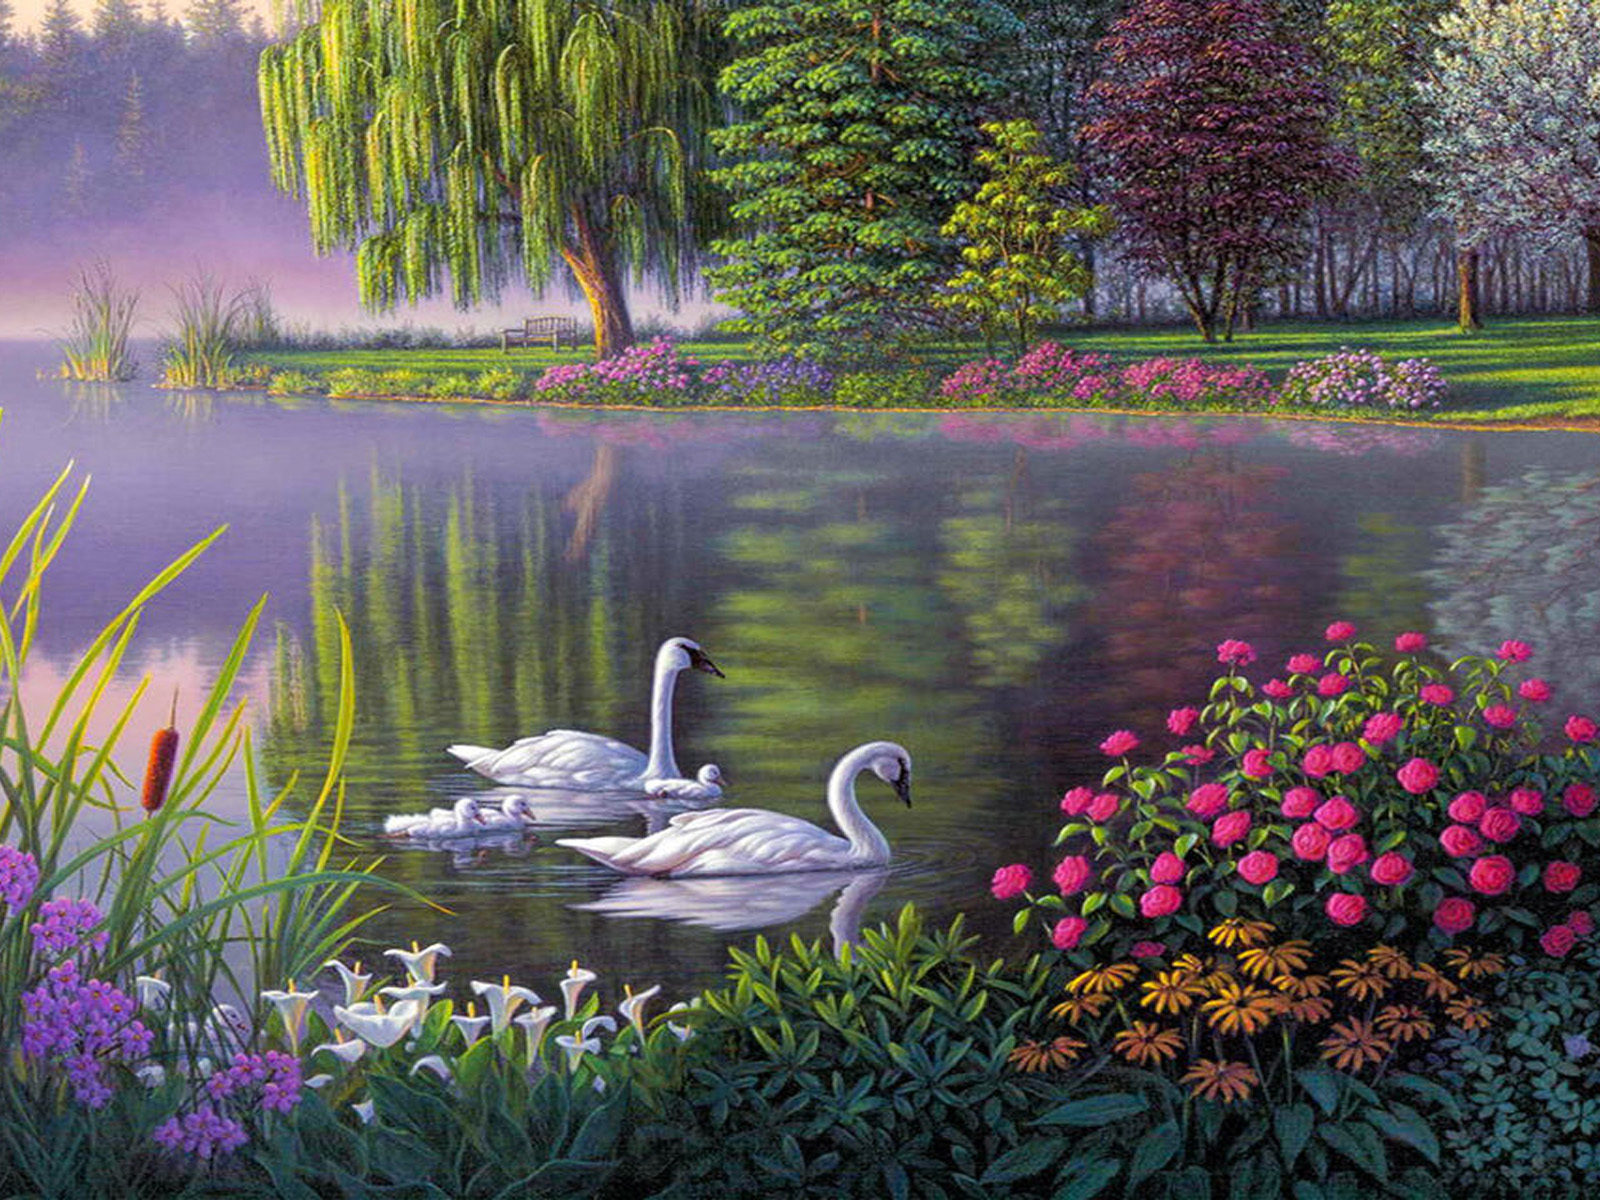 Wallpaper Girl Wallpaper Landscape Swan Lake Trees Flowers Art Wallpaper Hd